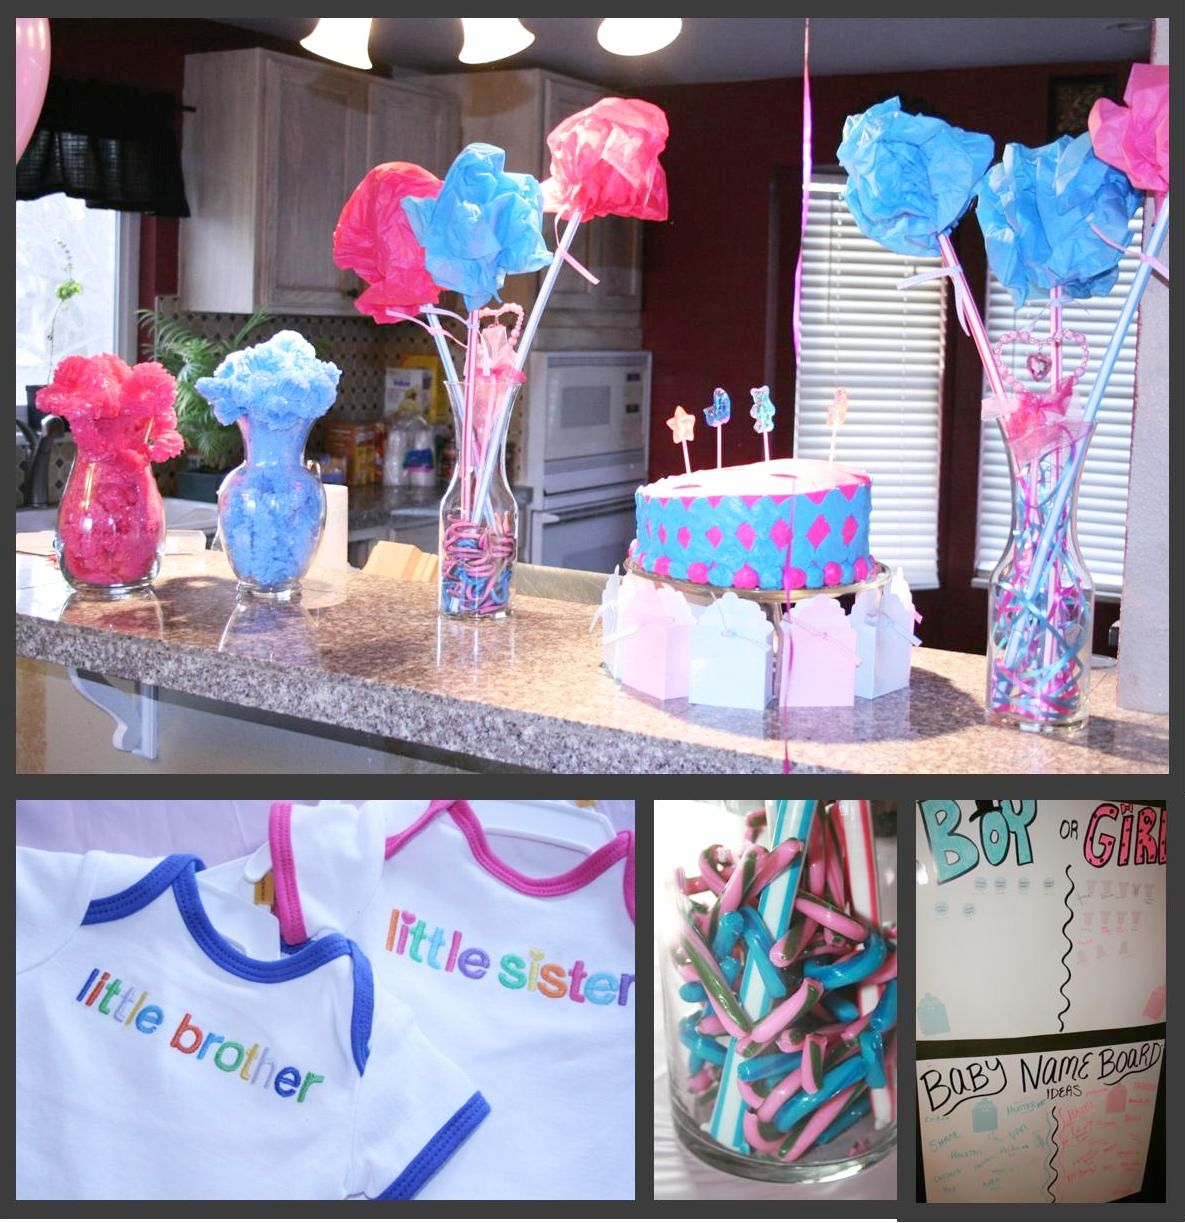 Baby Shower Reveal Party: Gender-Reveal Party